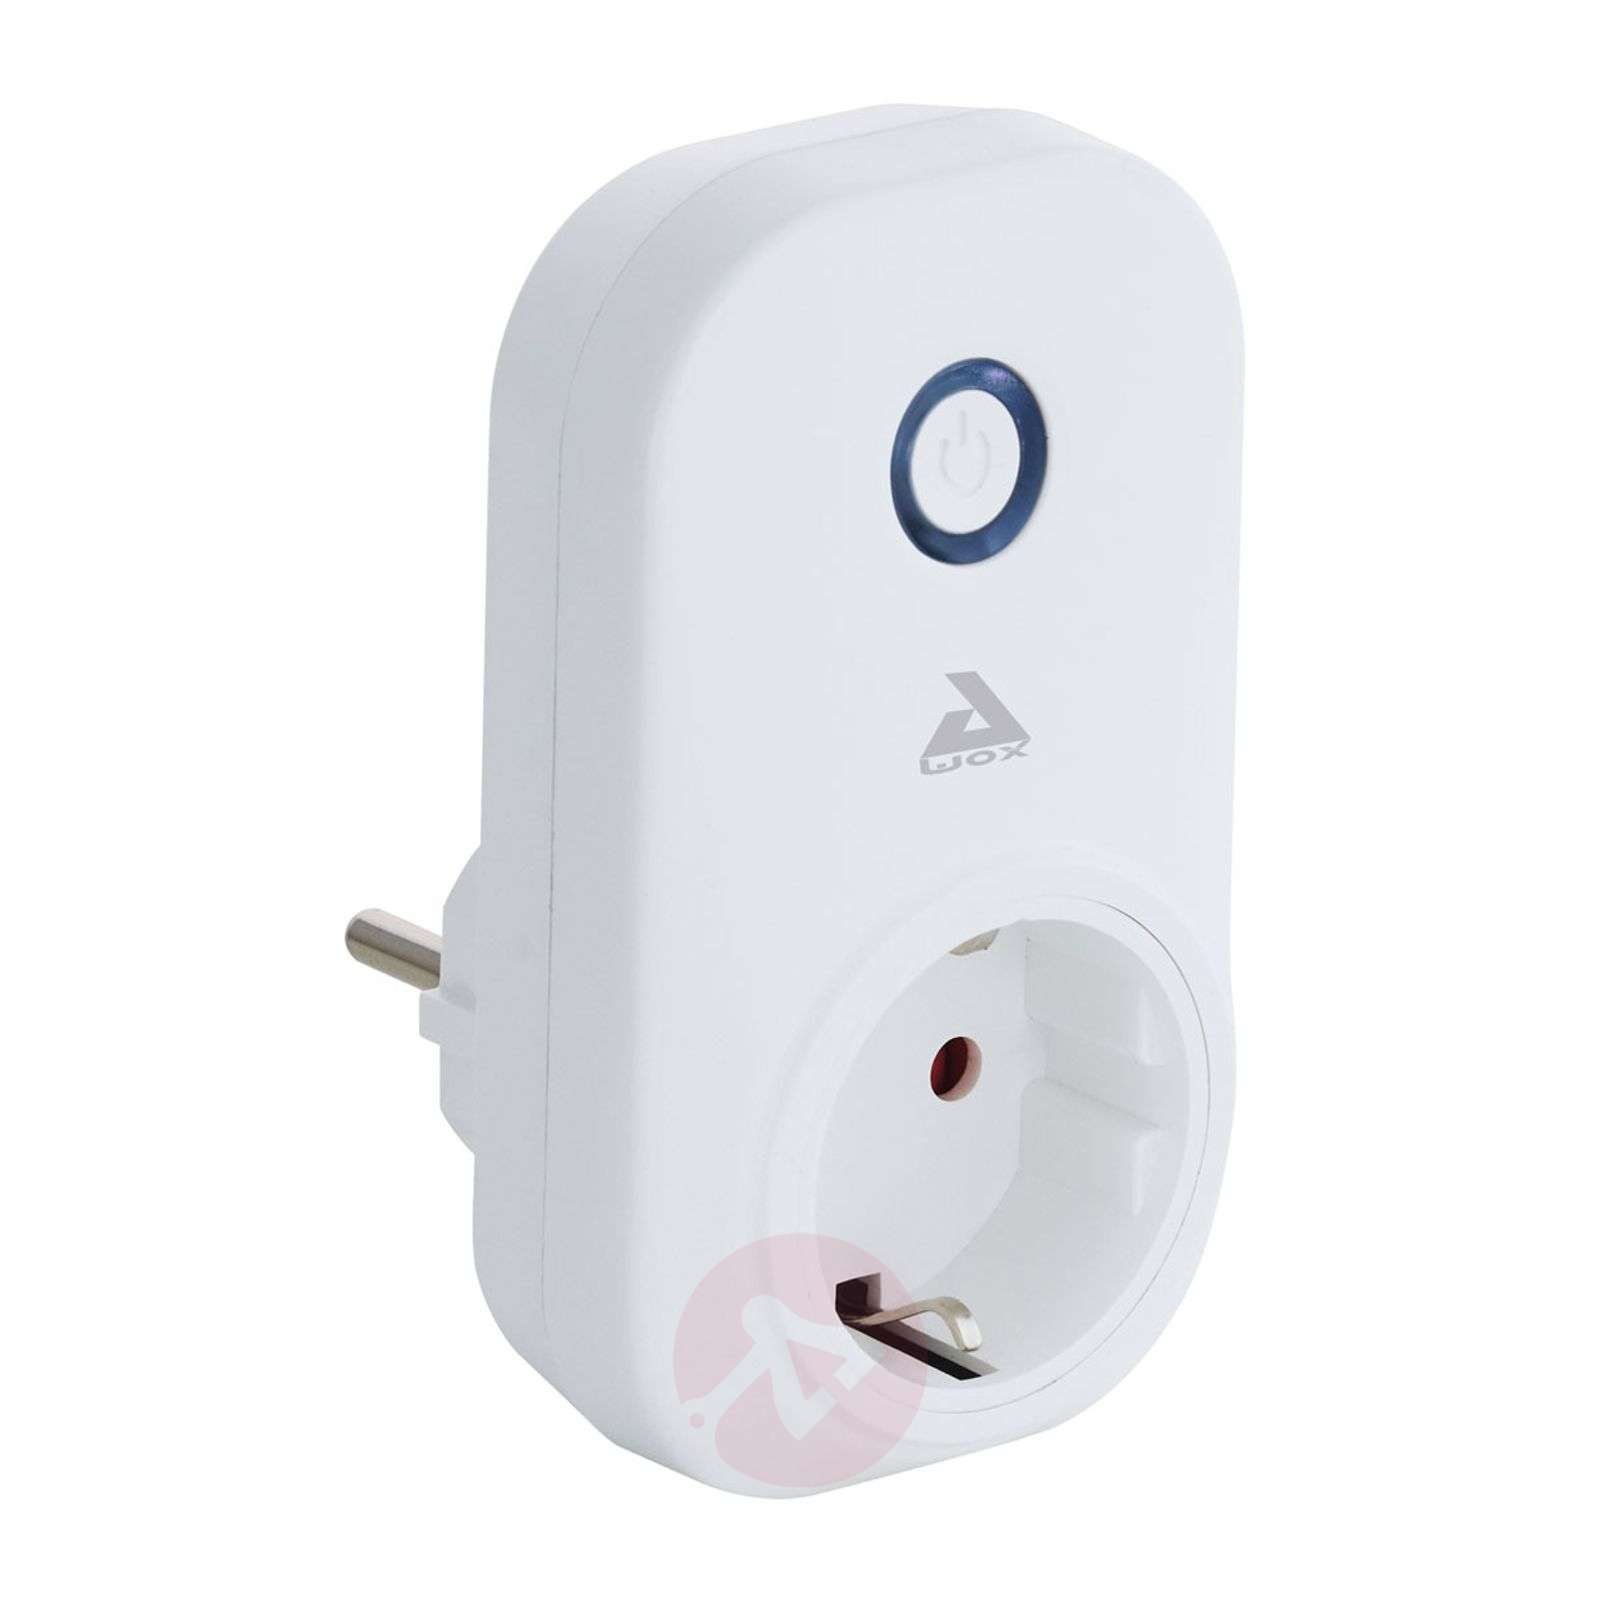 EGLO connect Plug presa Bluetooth-3032233-01